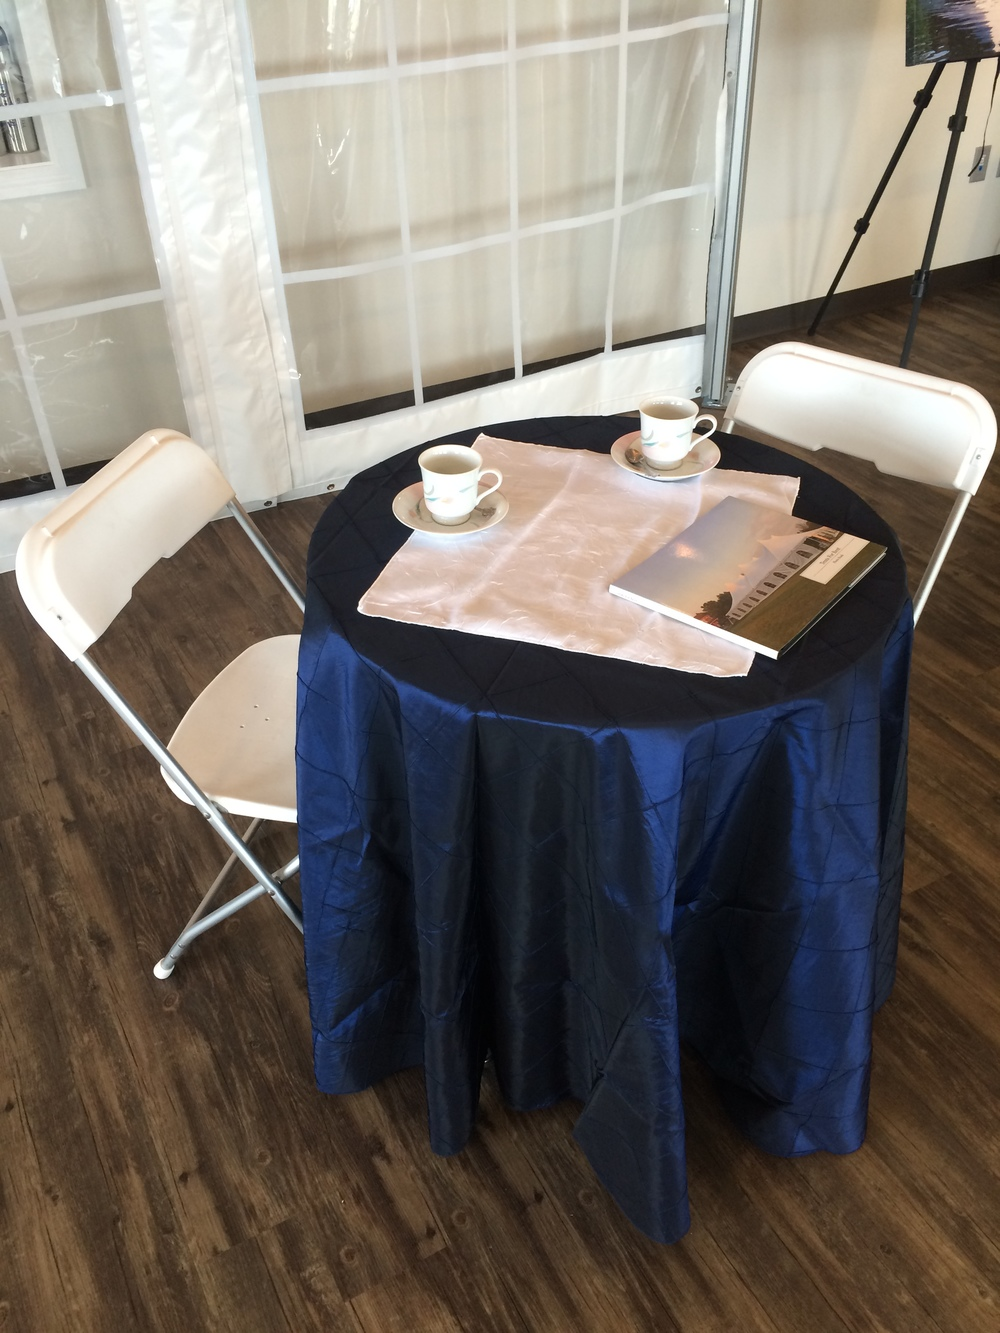 "30"" round table and white folding chairs"